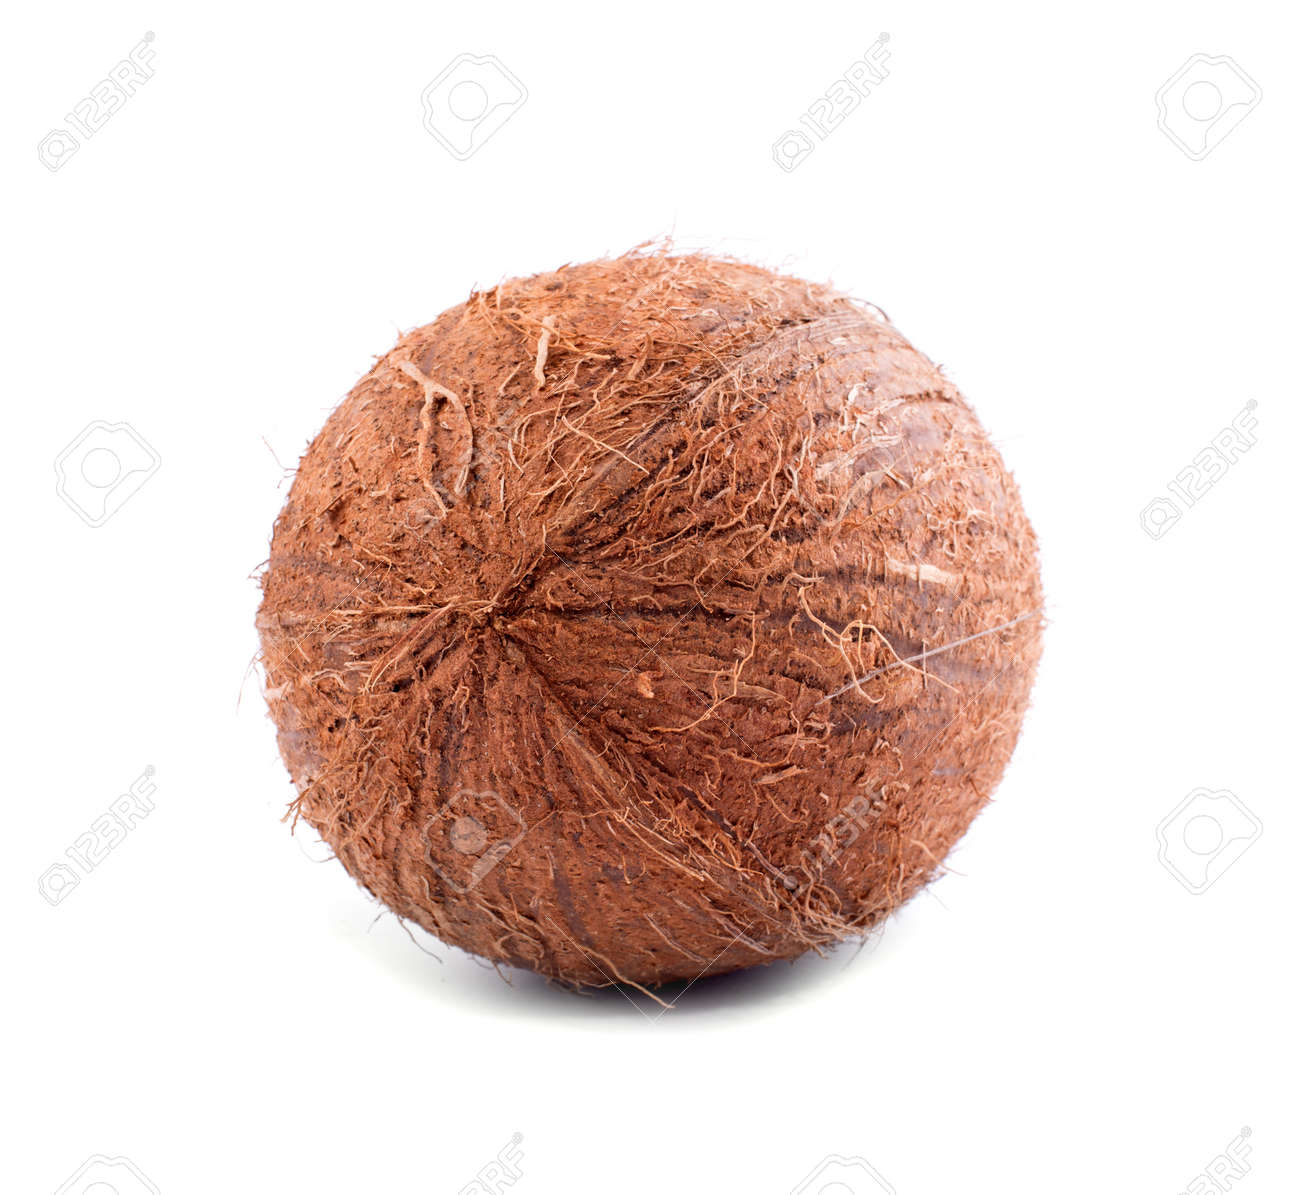 a view from behind on a whole hairy coconut isolated on a bright